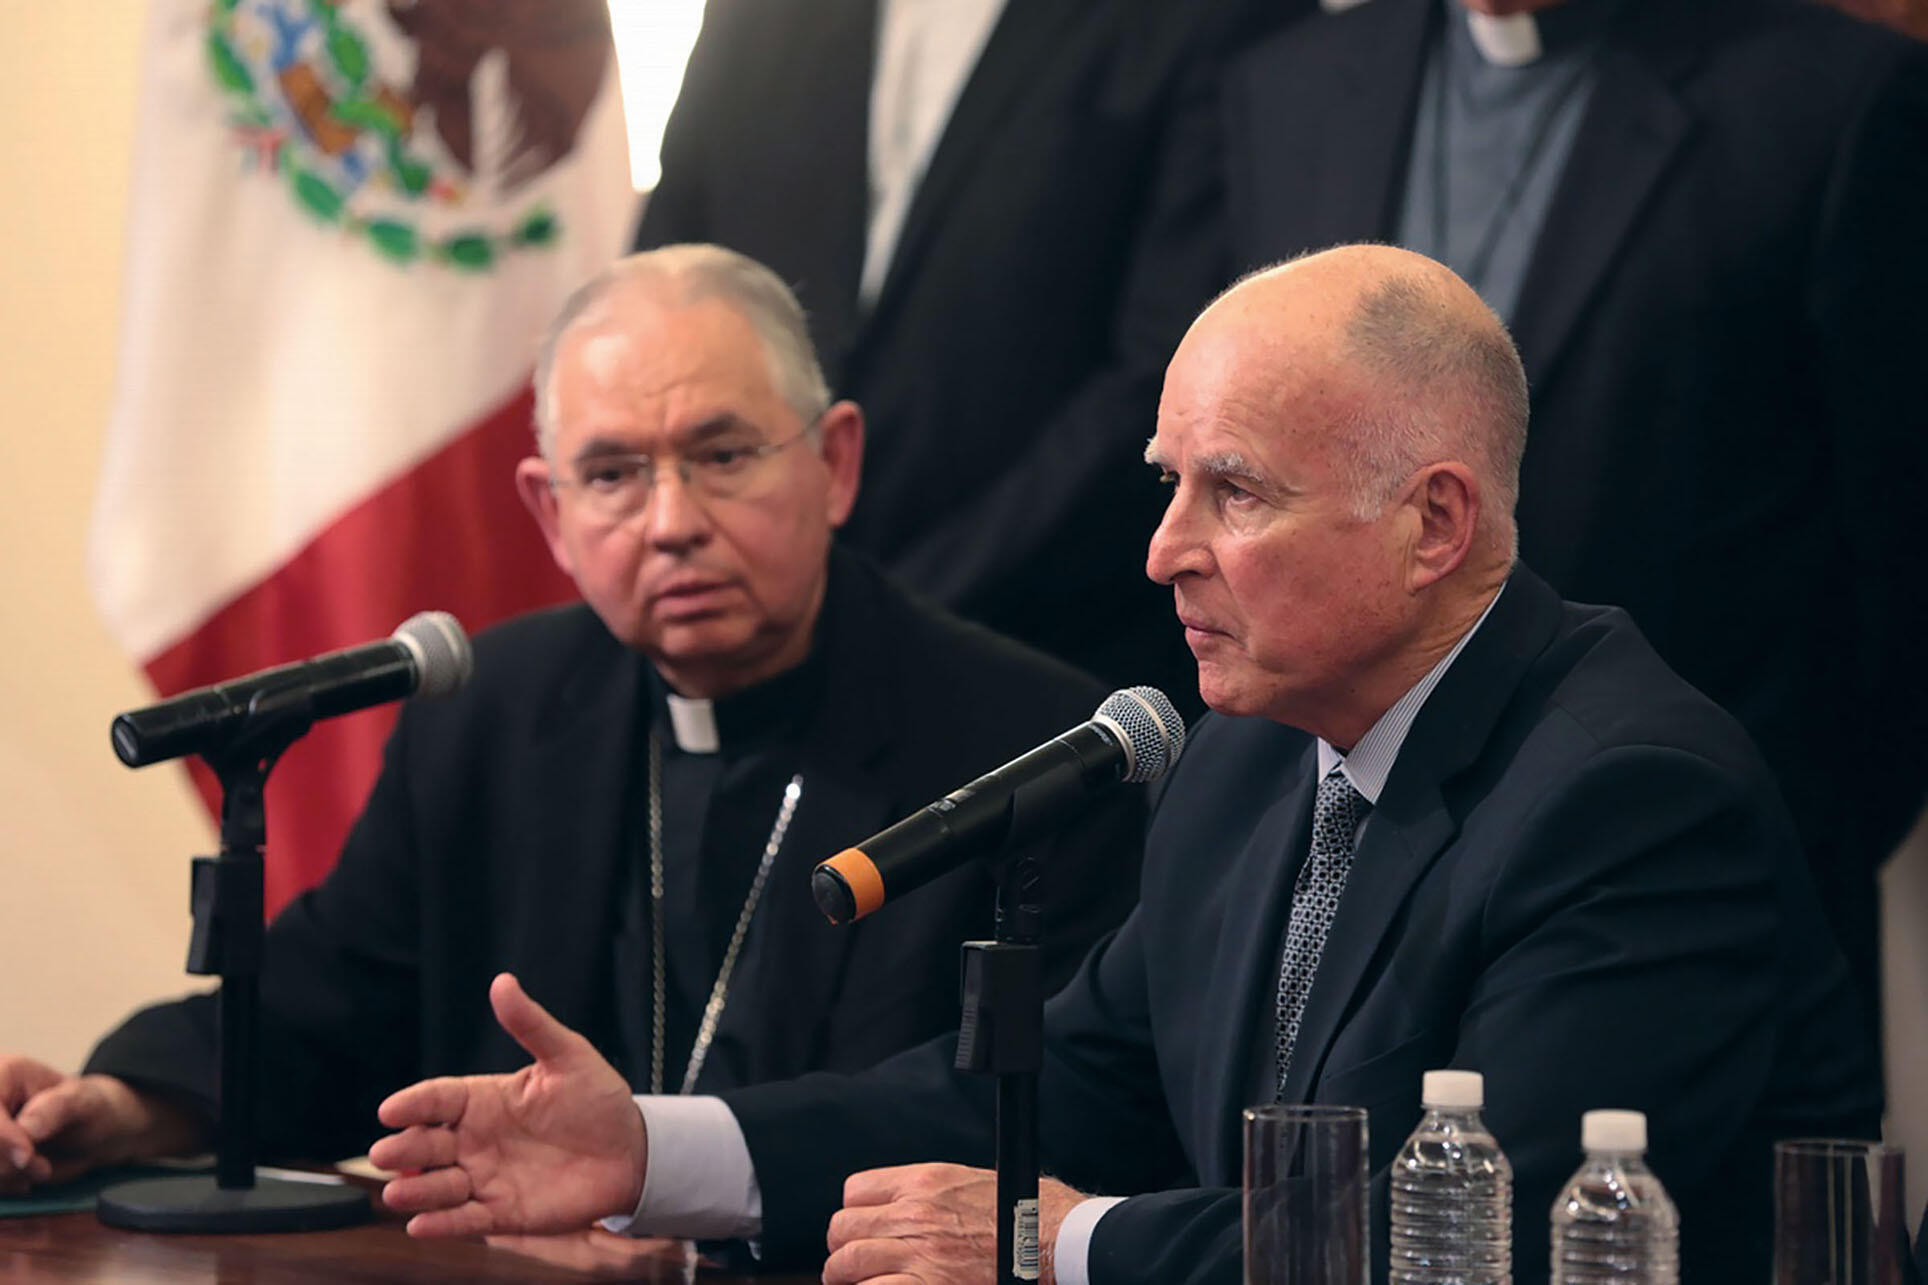 Governor Jerry Brown and Archbishop José Gómez at a Mexico press conference on unaccompanied minors at the U.S. border, July 2014. (Photo by Justin Short, Office of the Governor of California.) Governor Jerry Brown and Archbishop José Gómez at a Mexico pr